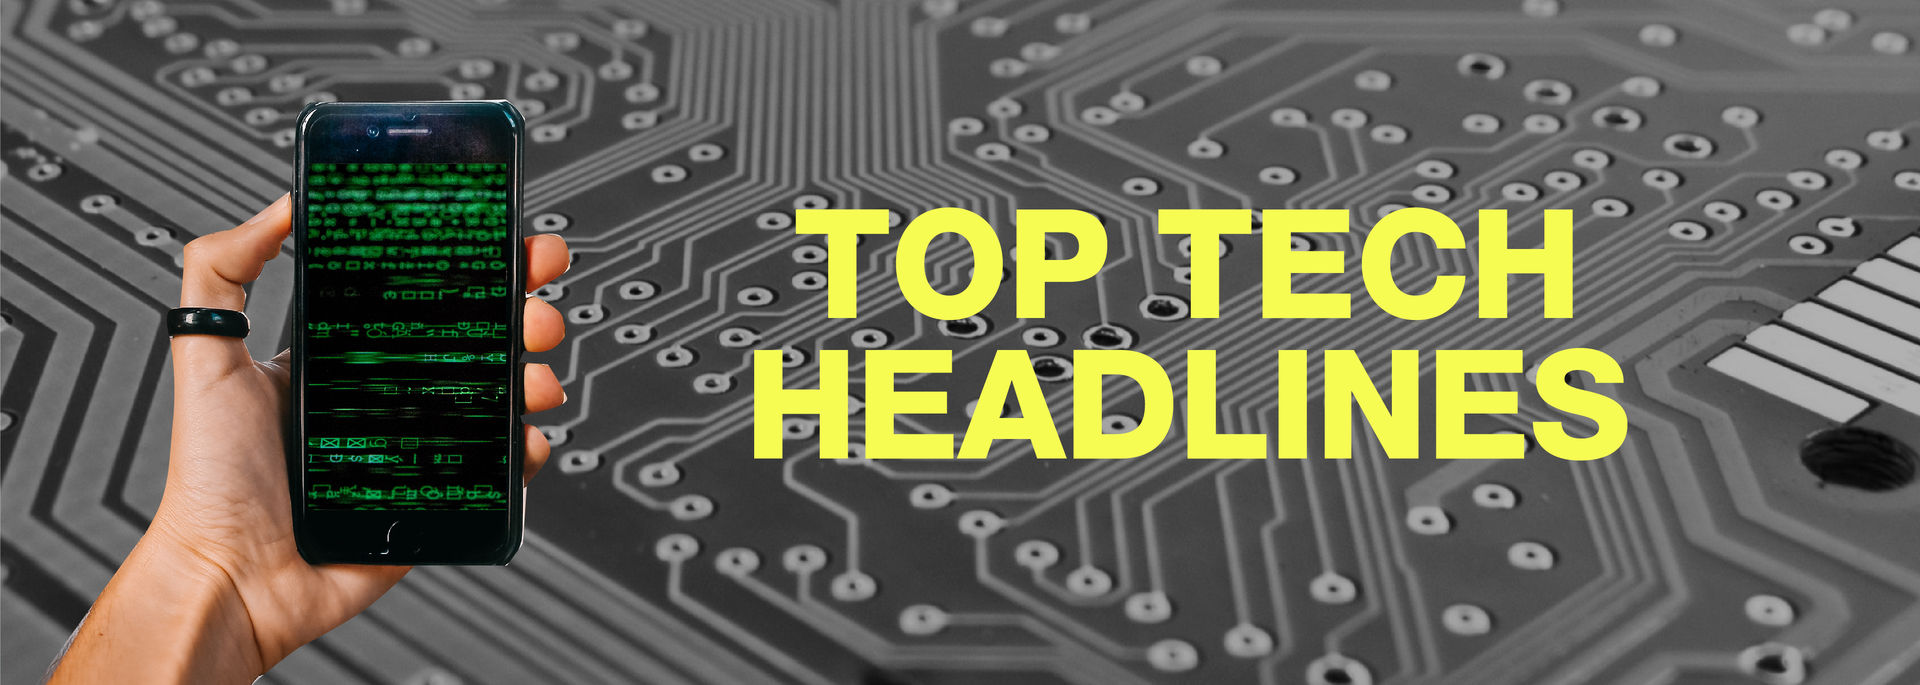 TOP TECH HEADLINES